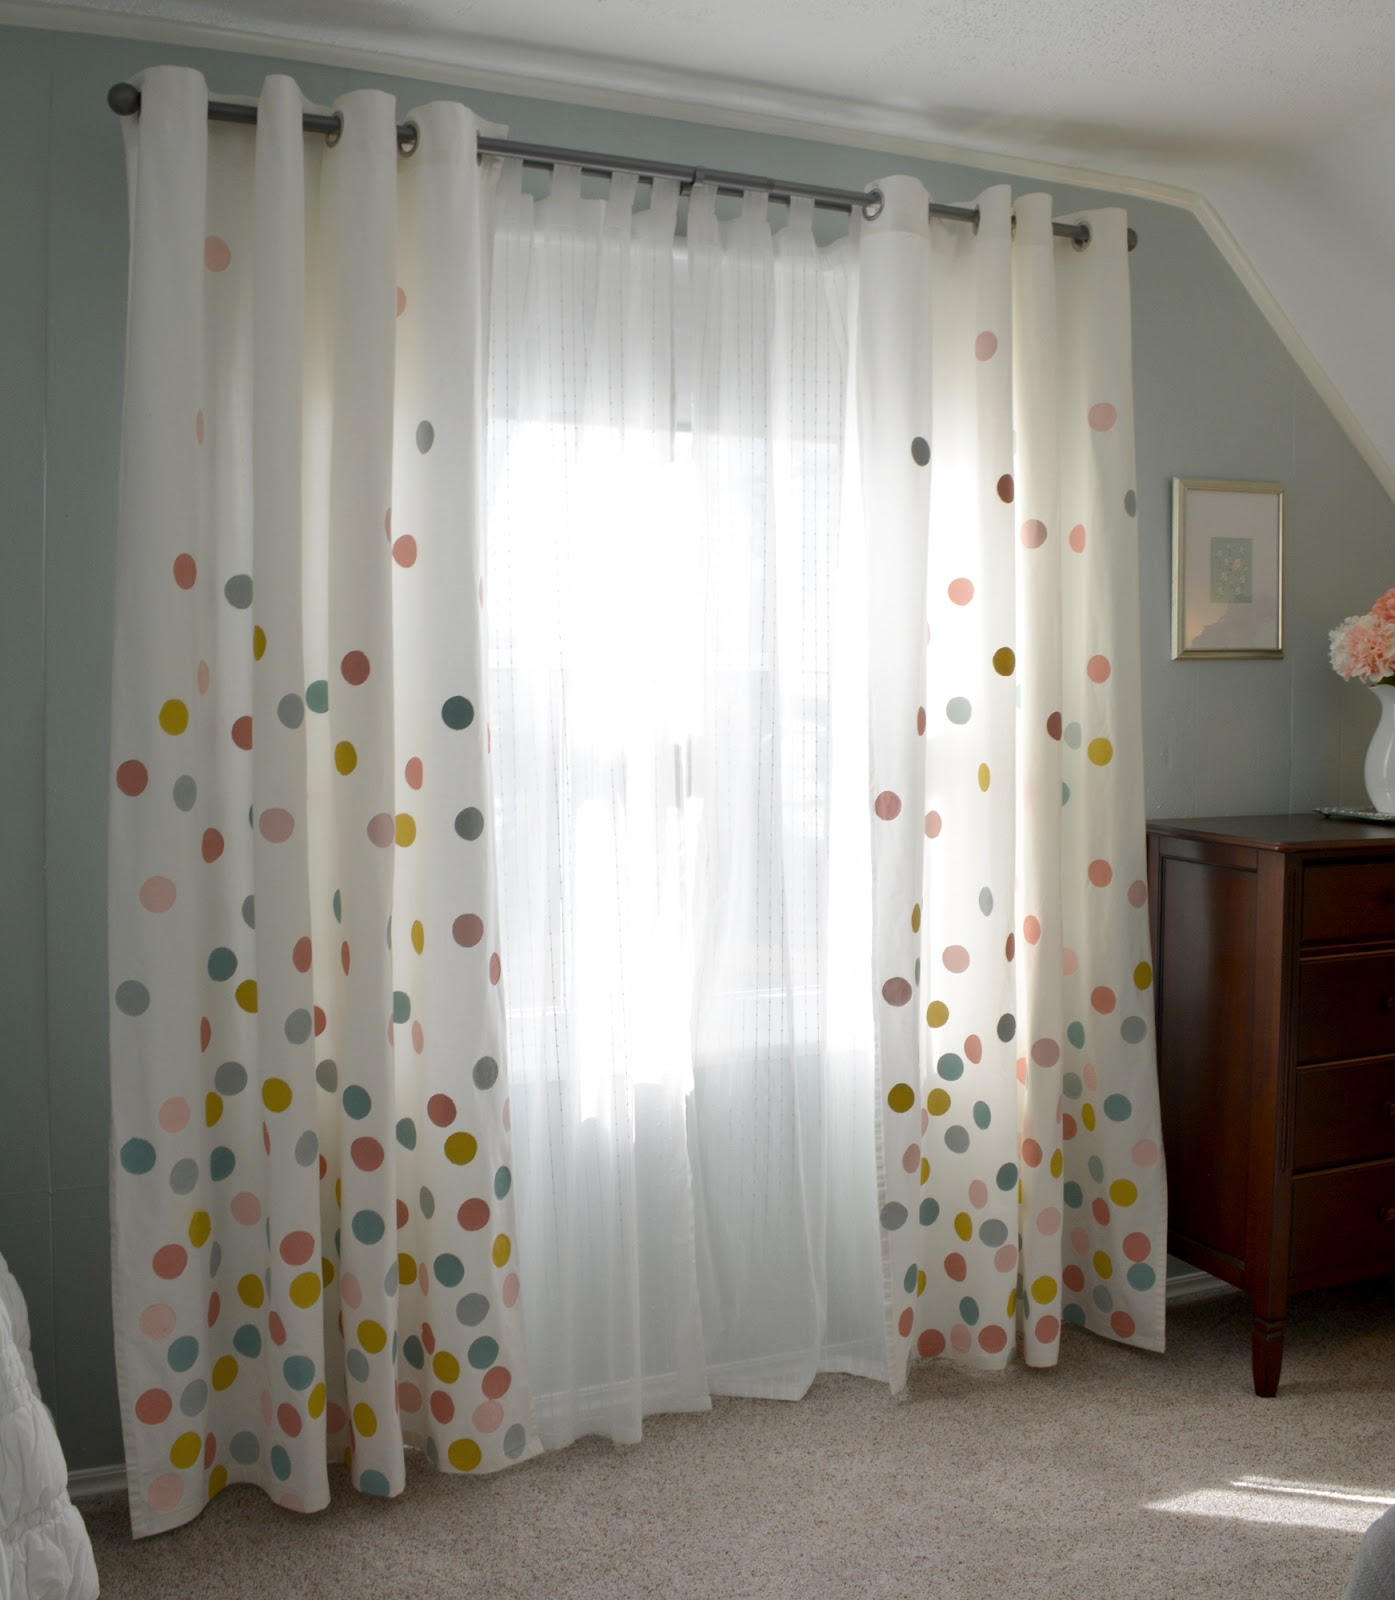 cozy birdhouse | confetti curtains